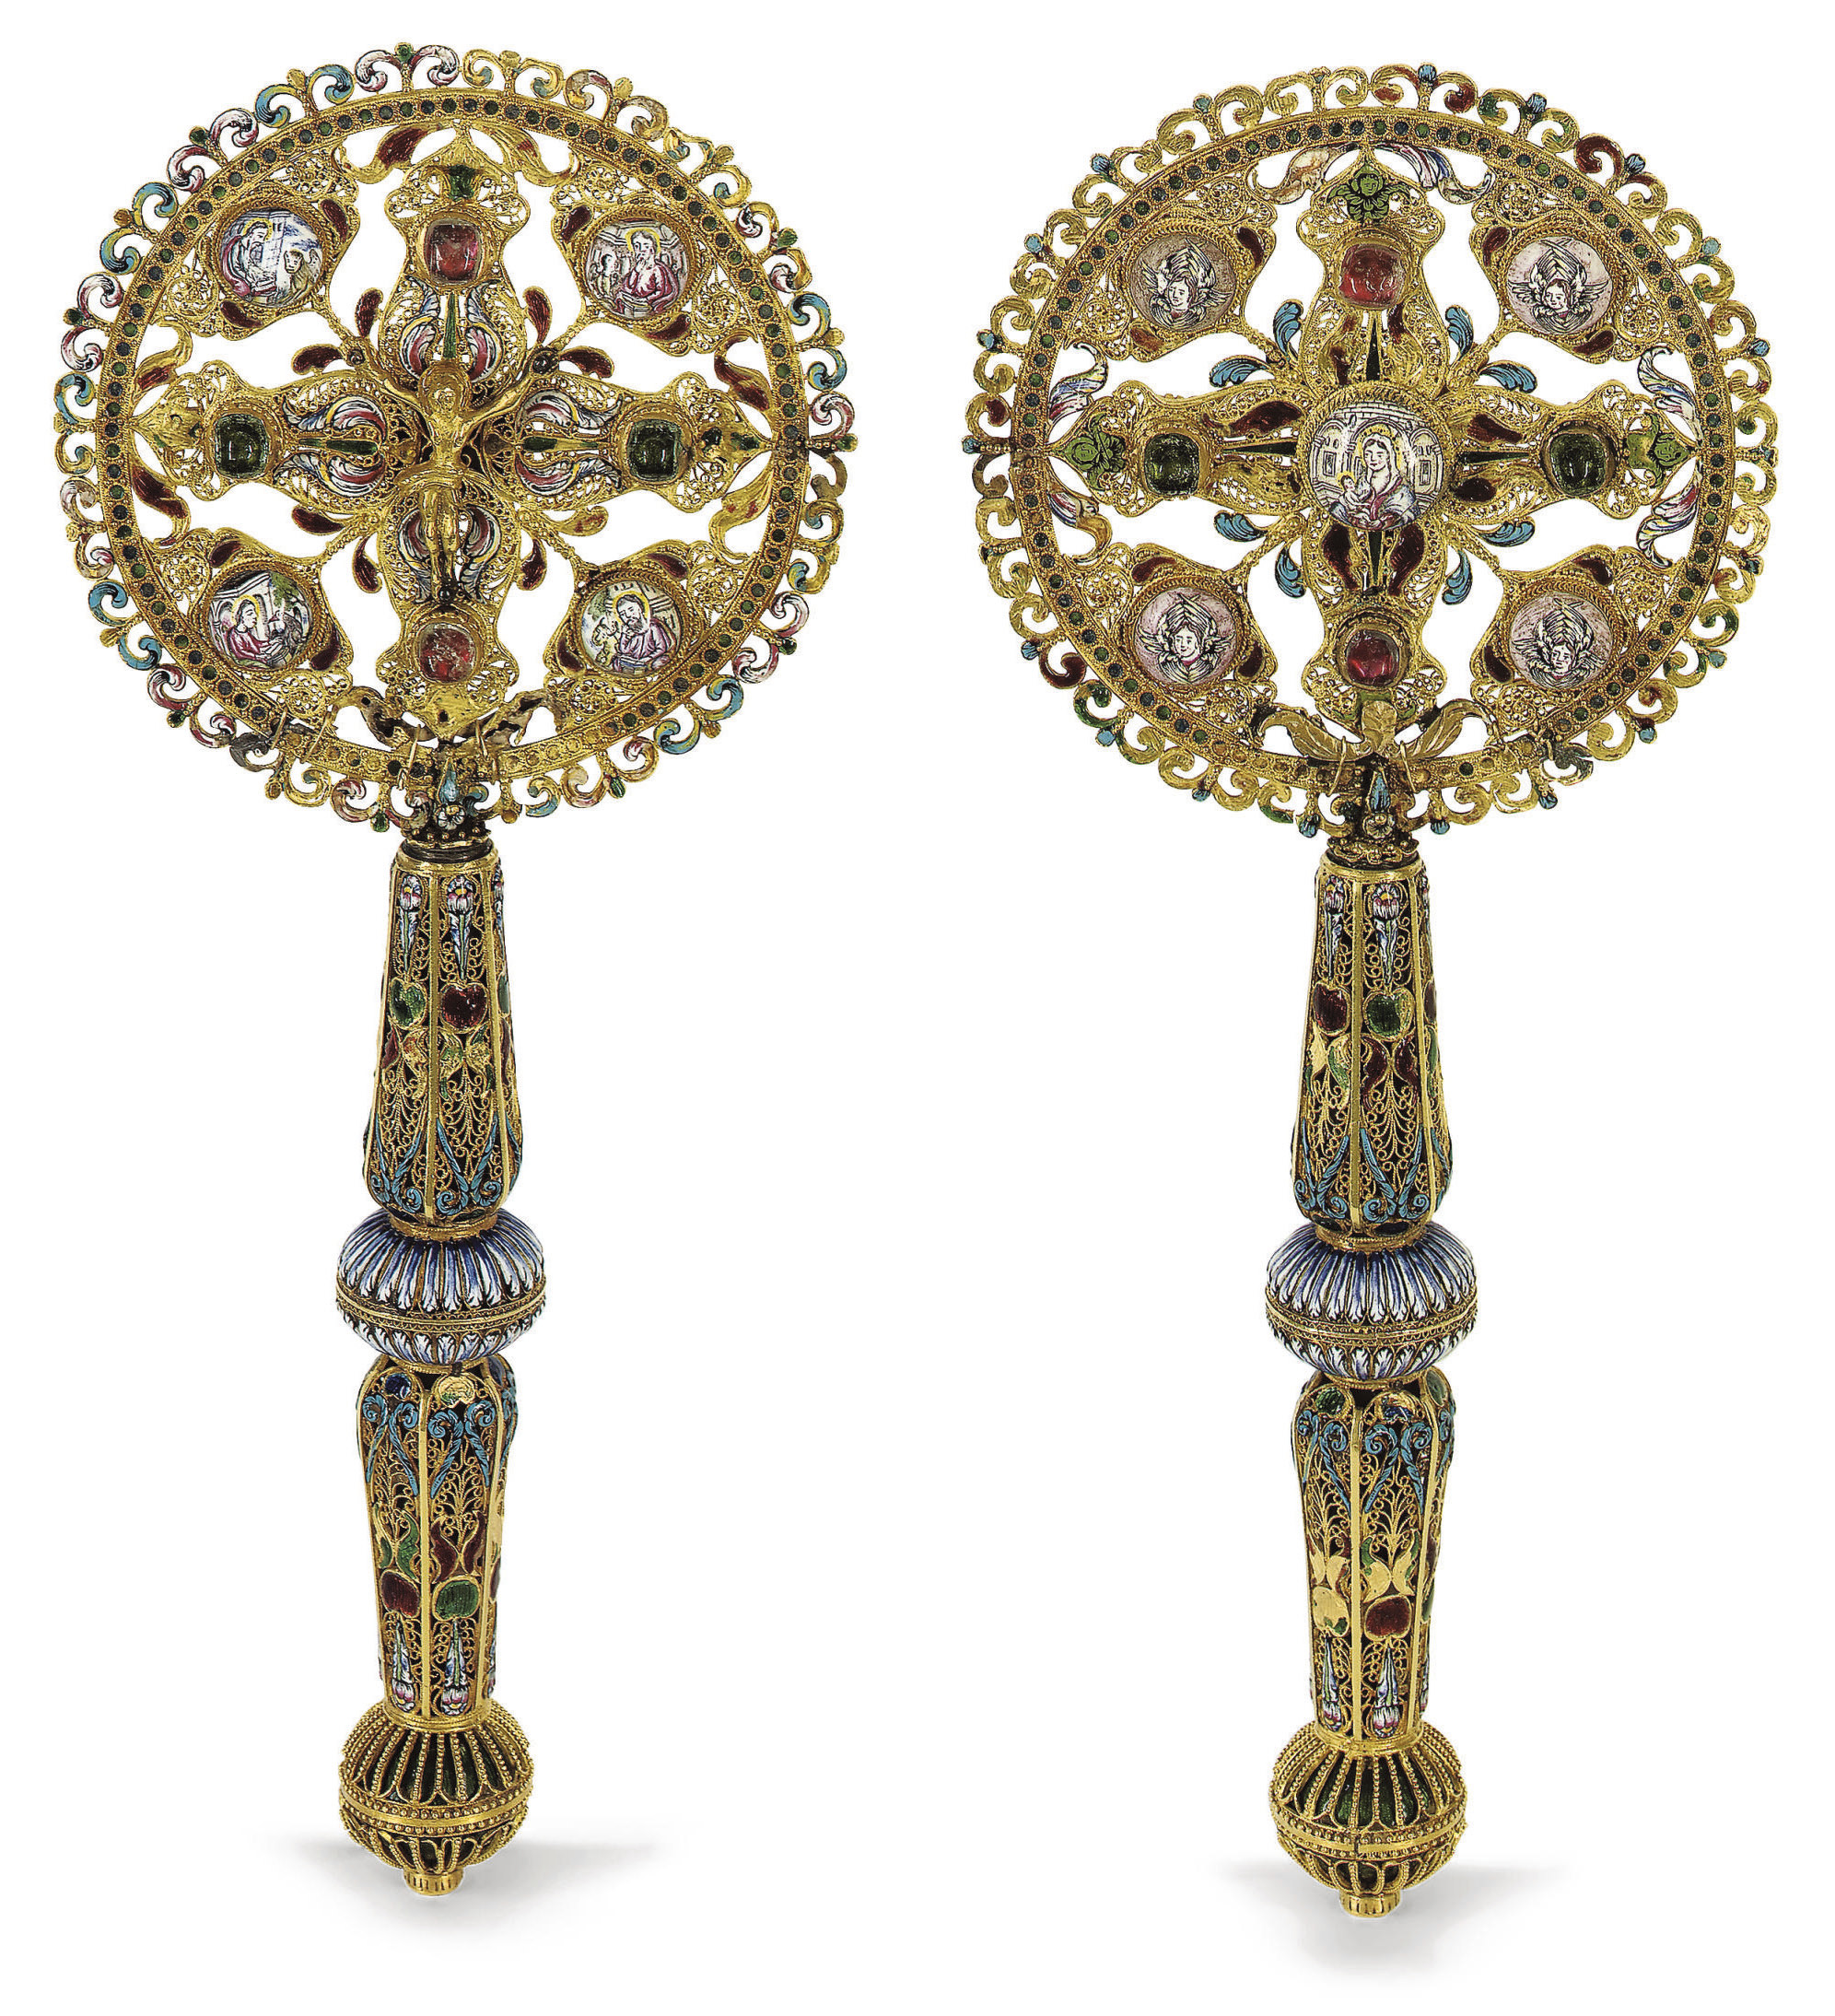 A GOLD AND ENAMEL BENEDICTION